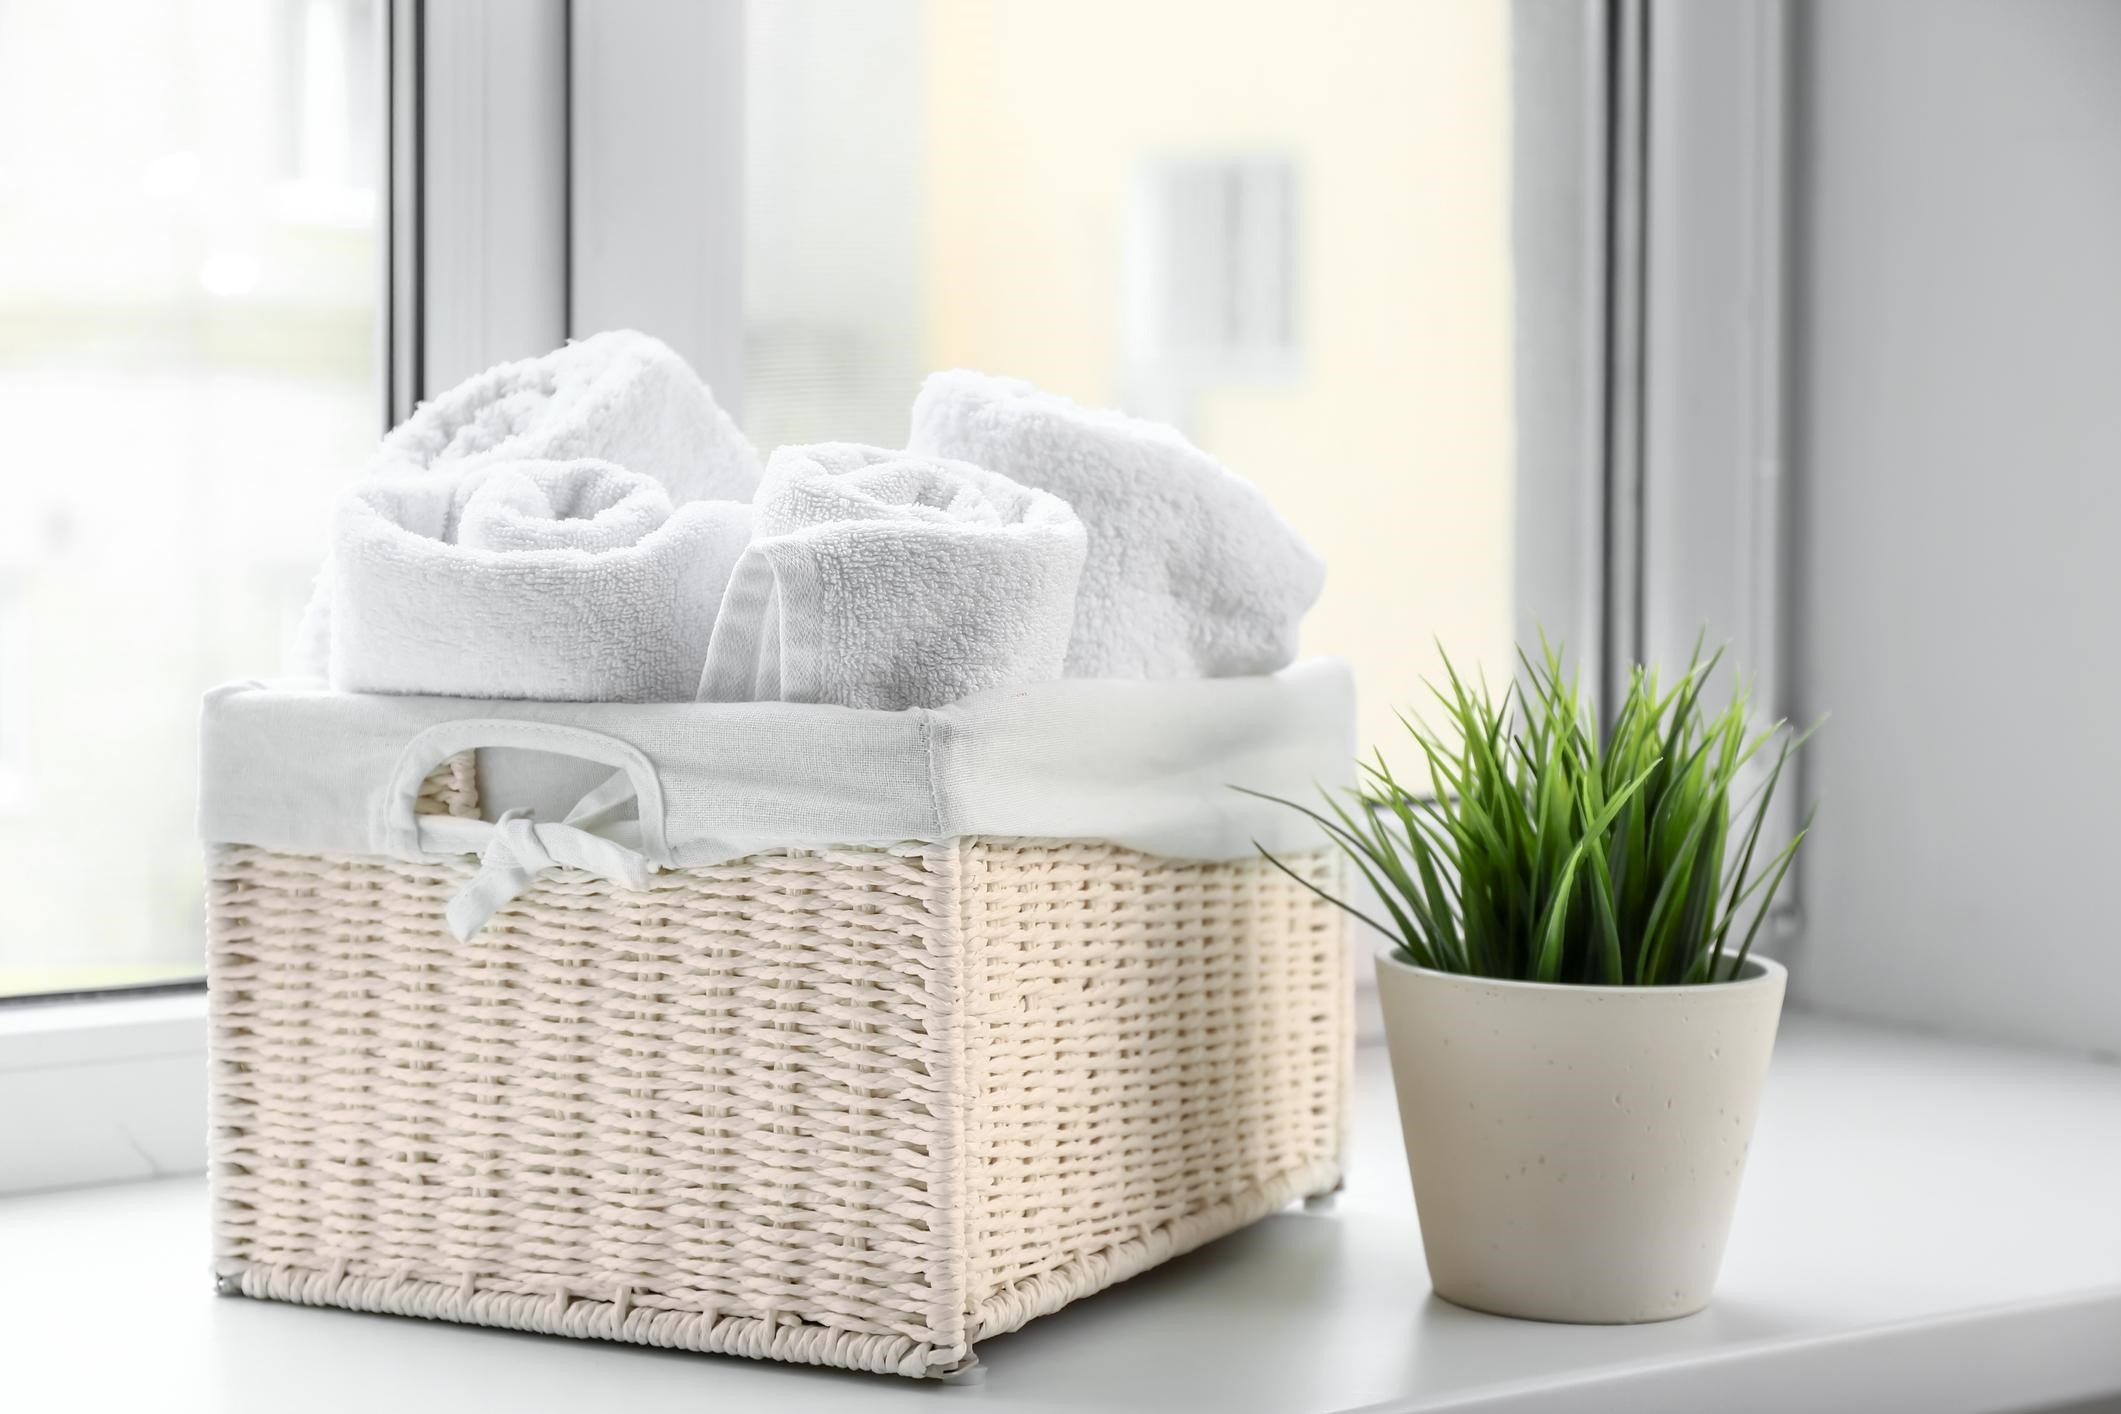 basket full of white towels on a window ledge with a green plant